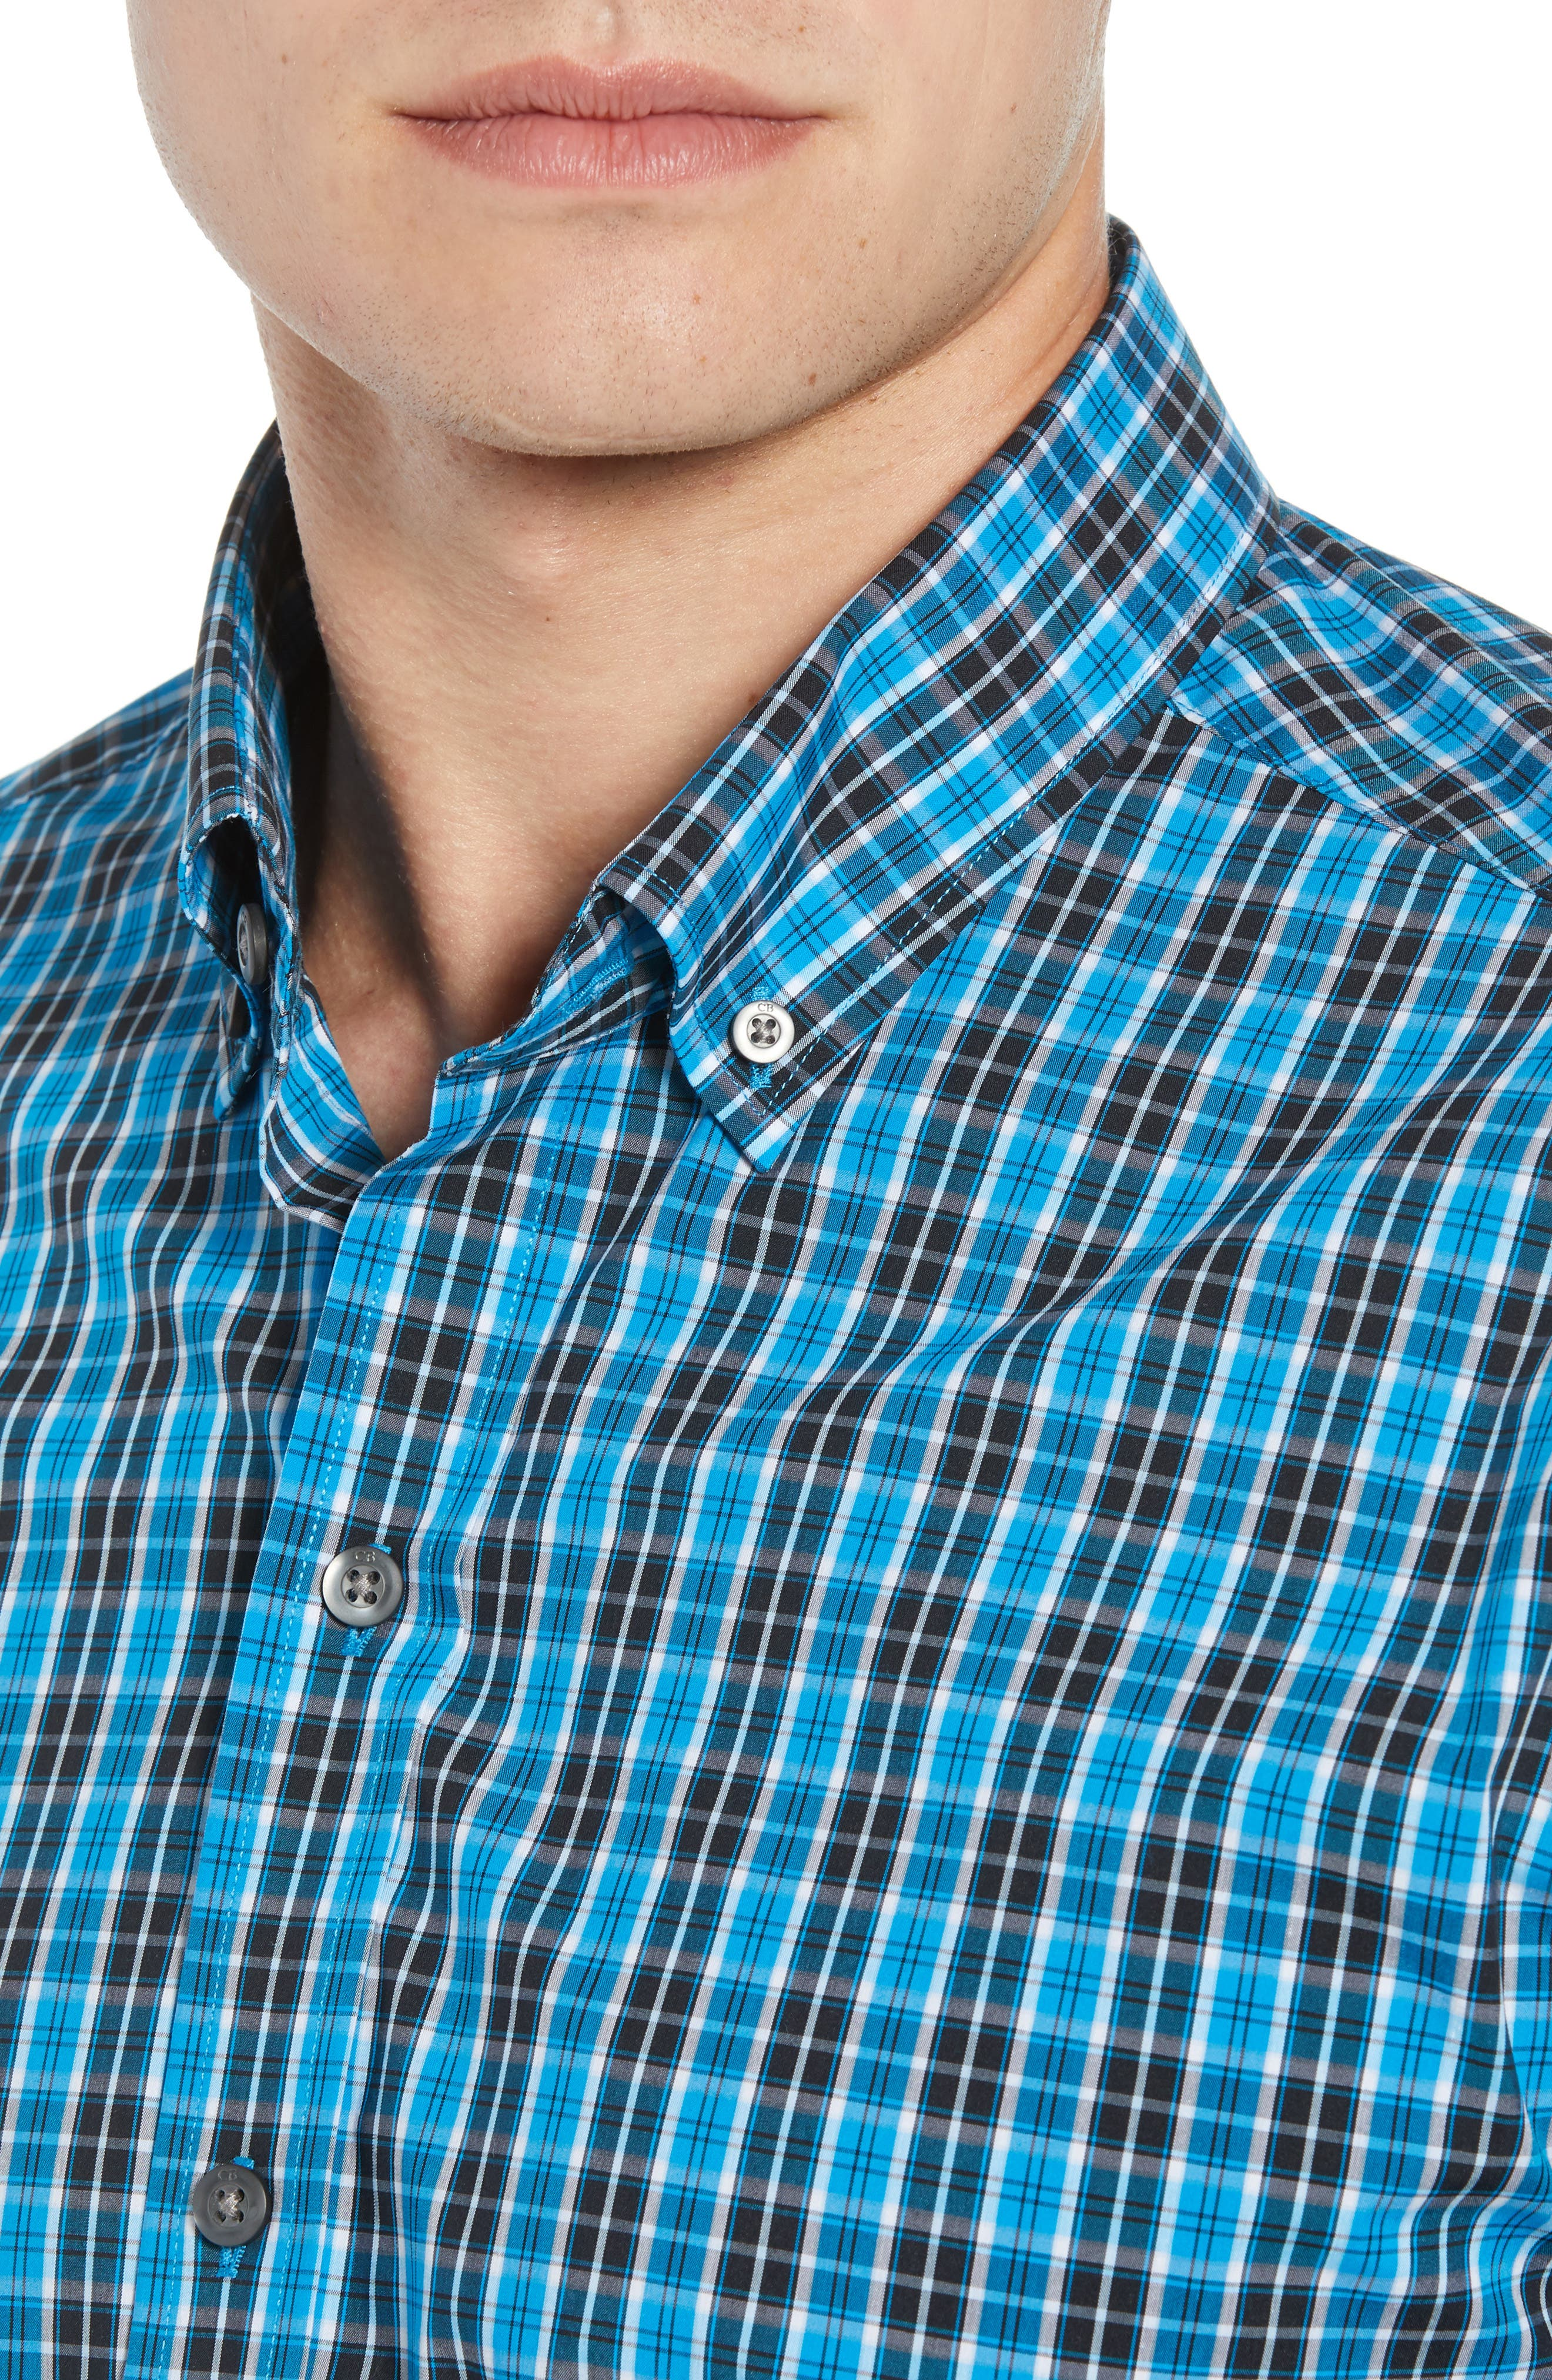 Ronald Regular Fit Plaid Performance Sport Shirt,                             Alternate thumbnail 2, color,                             ORBIT